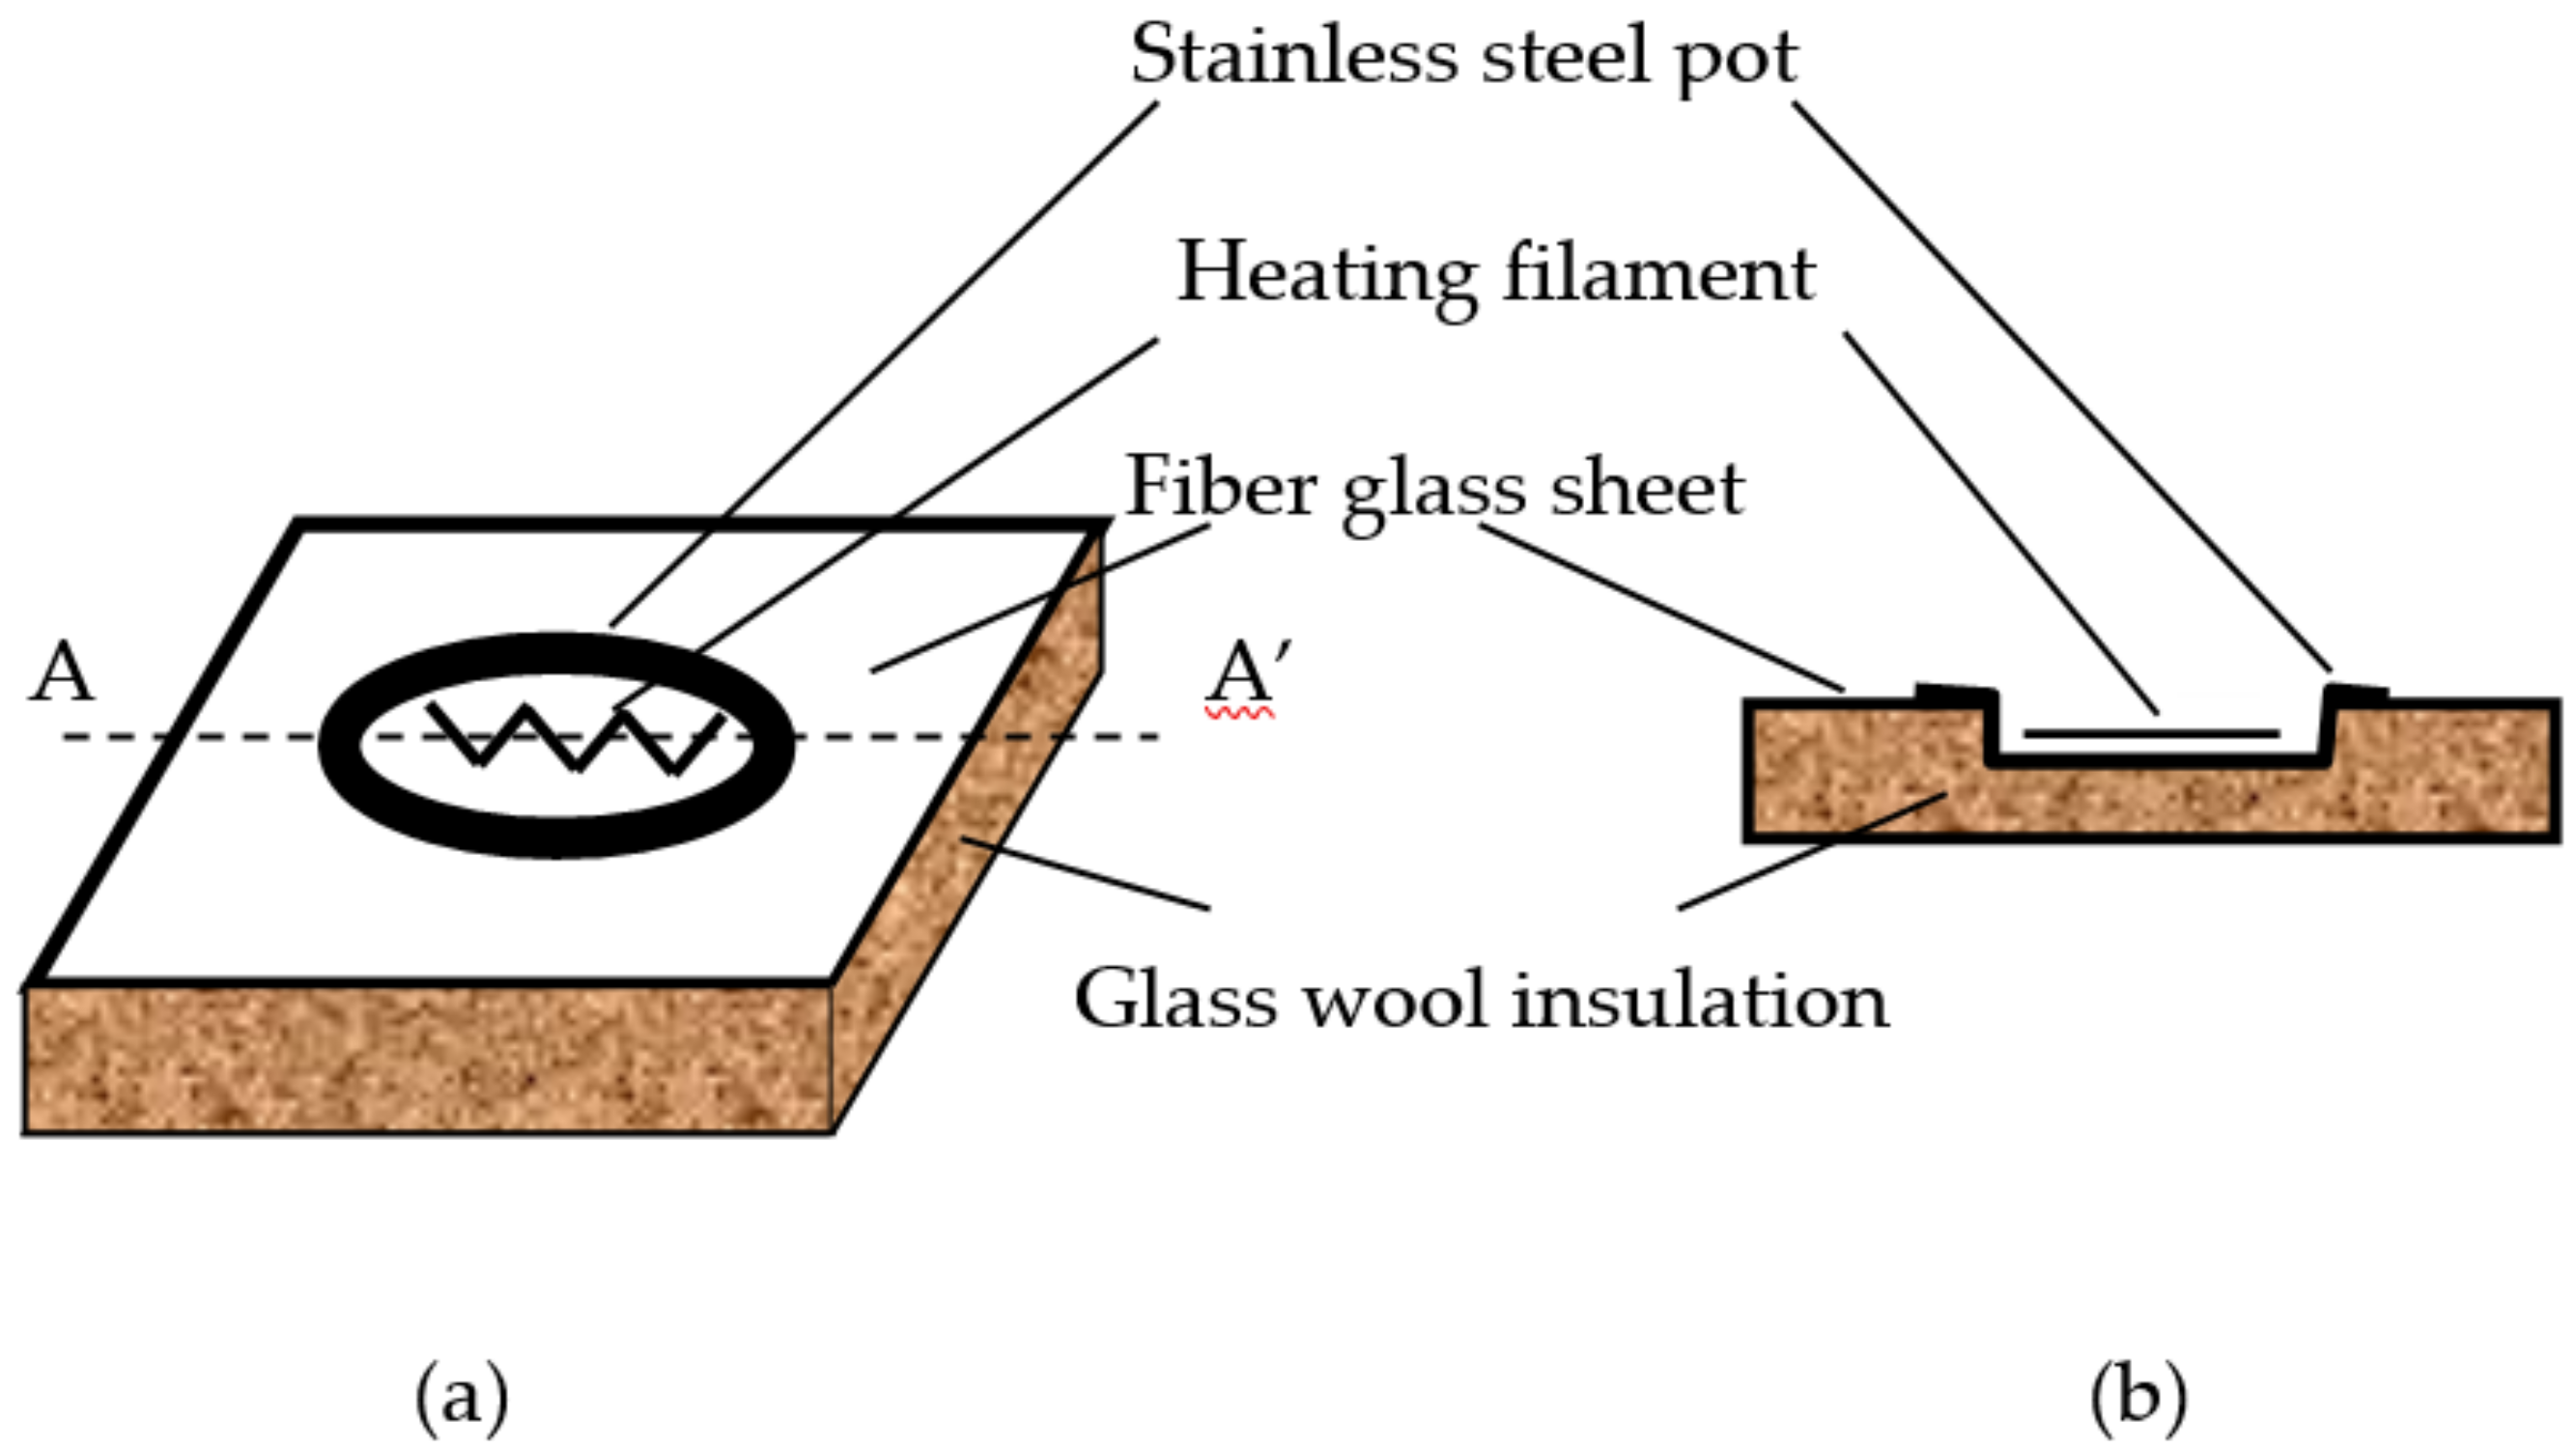 Energies Free Full Text Solar E Cooking A Proposition For Potato Battery Diagram How To Make 11 02933 G002